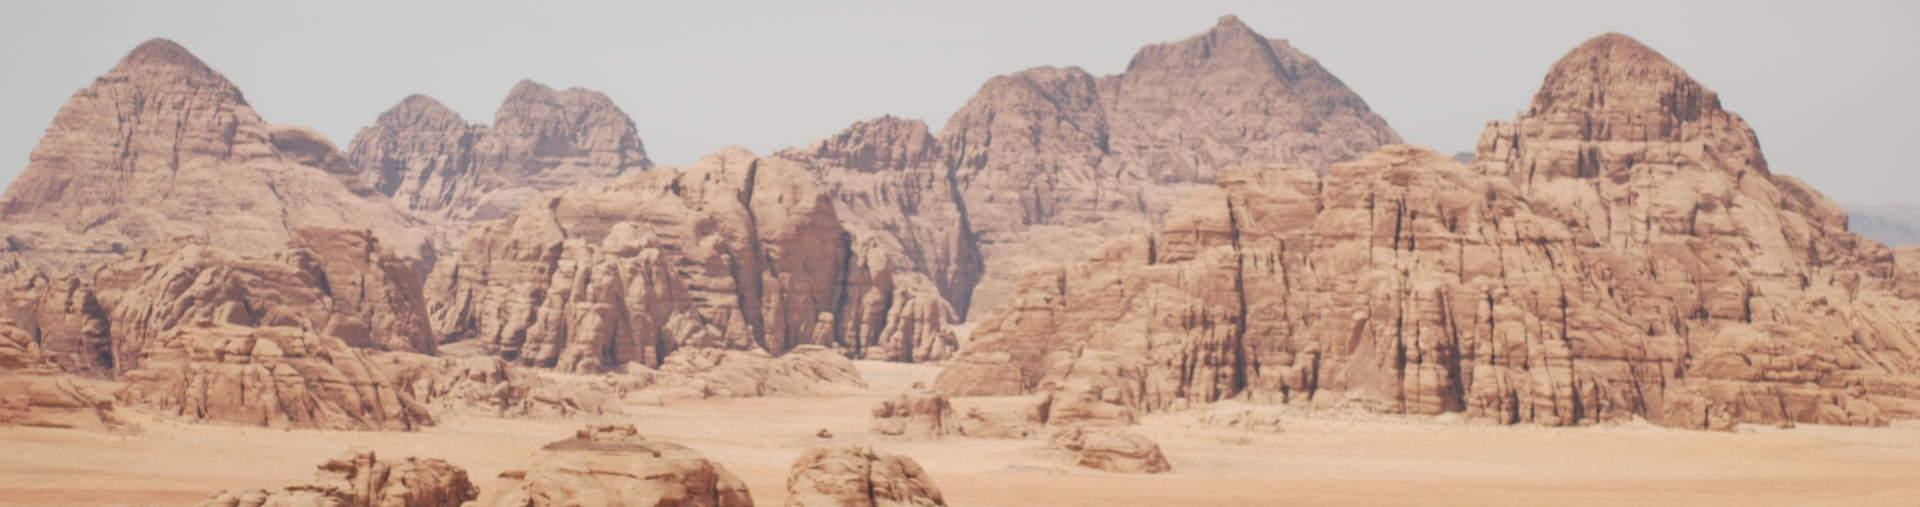 Petra Tour from Tel Aviv 2 Day Tour